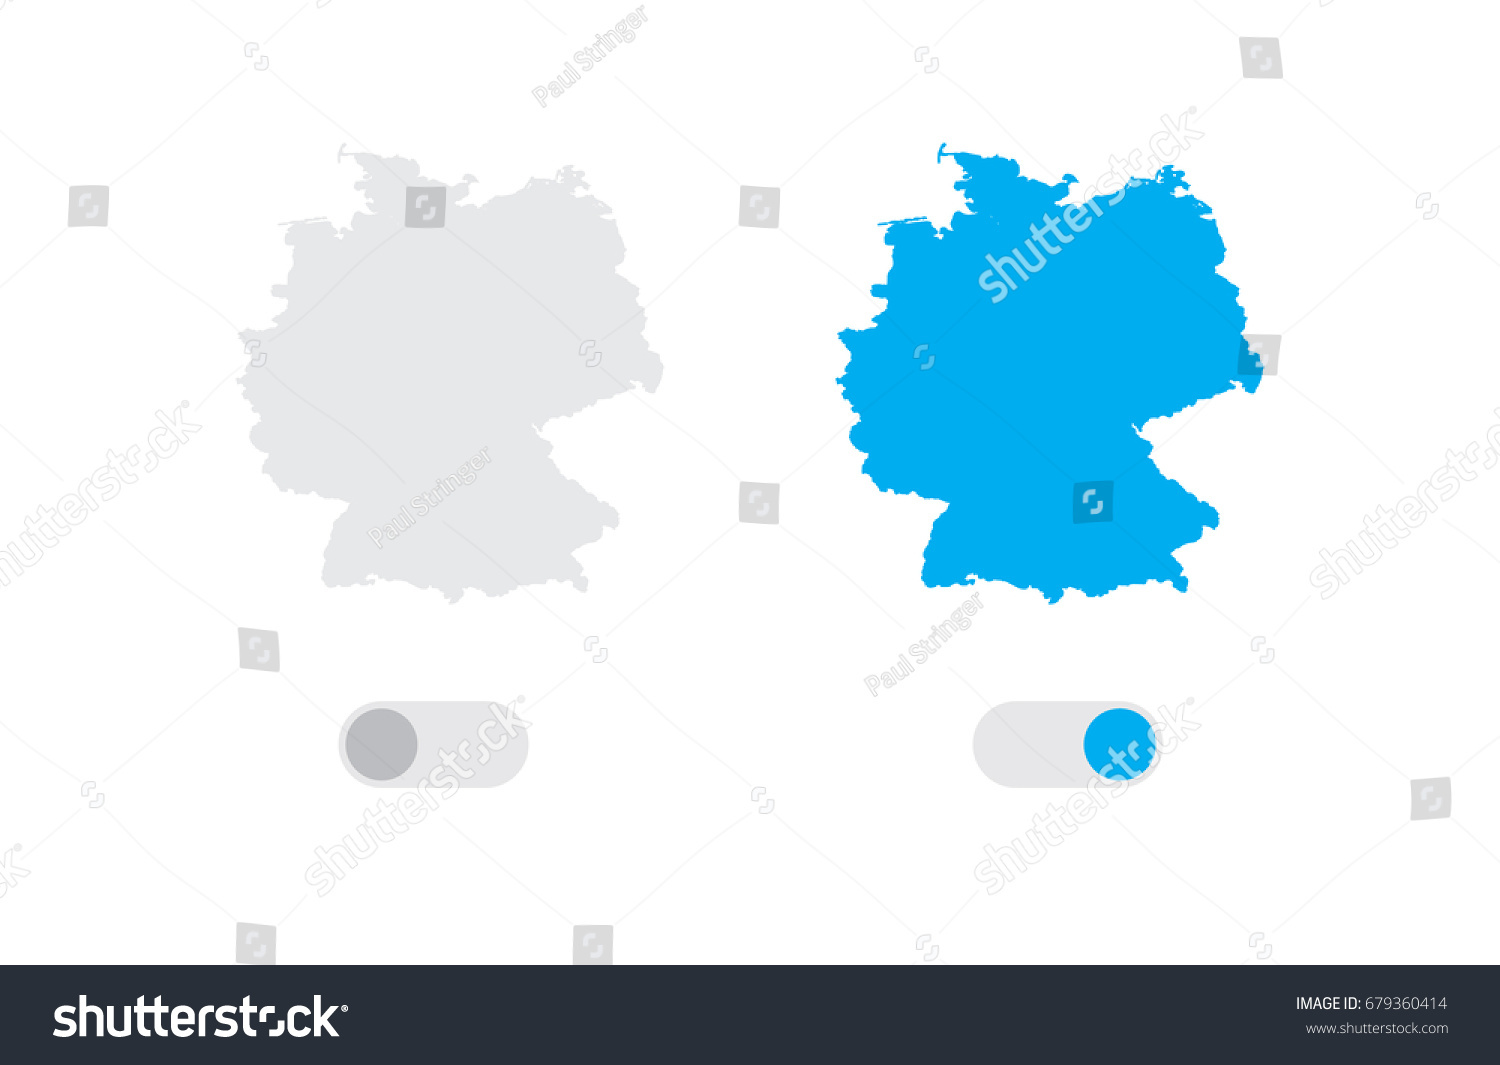 Active Inactive Illustrated Country Shape Germany Stock Vector - Germany map shape